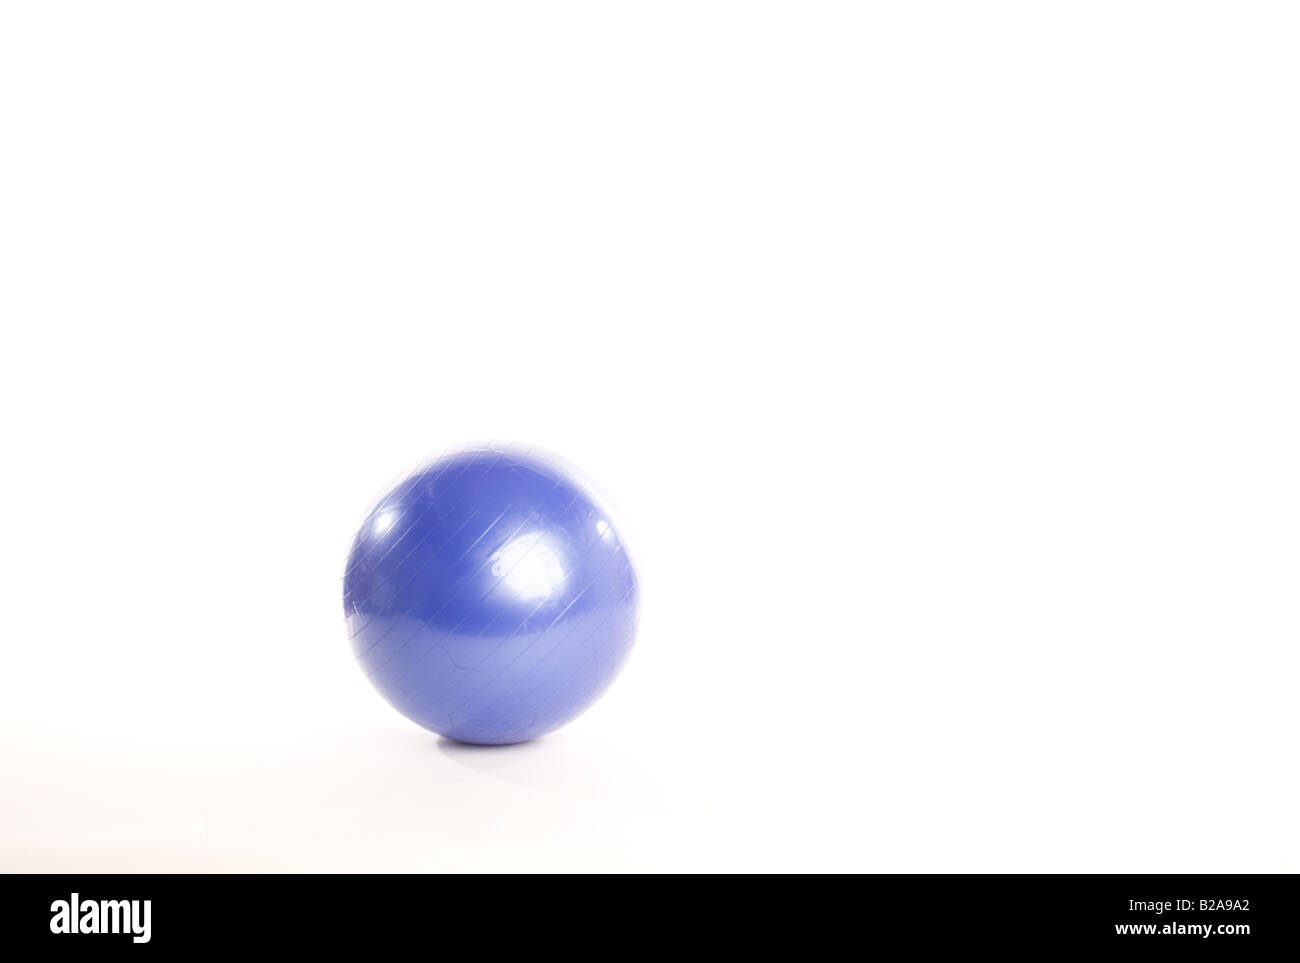 An exercise ball. - Stock Image